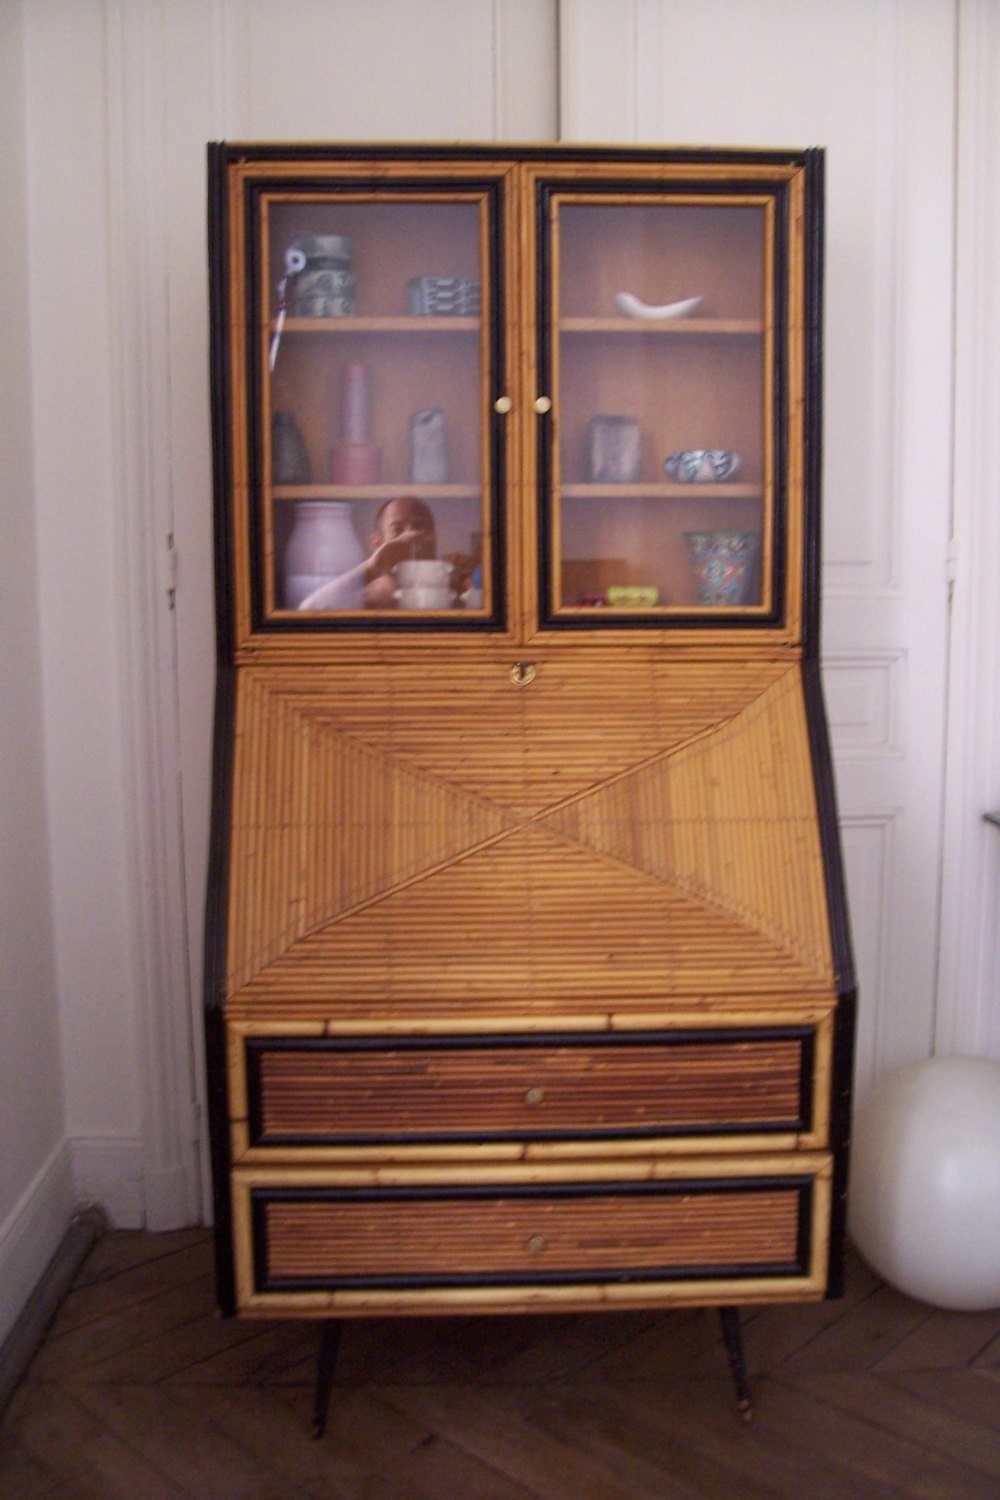 meuble bureau secretaire vitrine vintage 1950 era par designxxeme. Black Bedroom Furniture Sets. Home Design Ideas